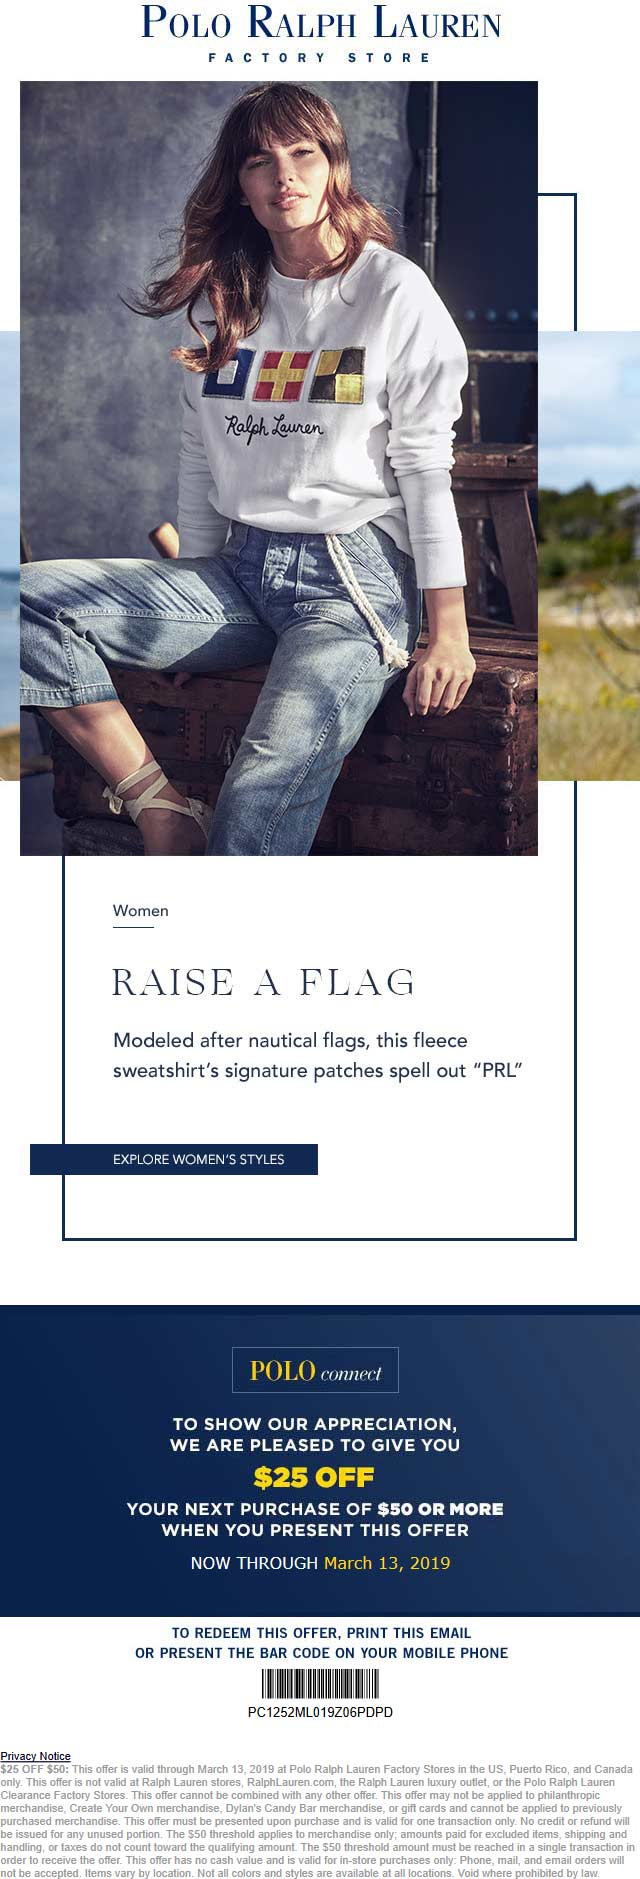 Polo Ralph Lauren Factory Coupon July 2019 $25 off $50 at Polo Ralph Lauren Factory